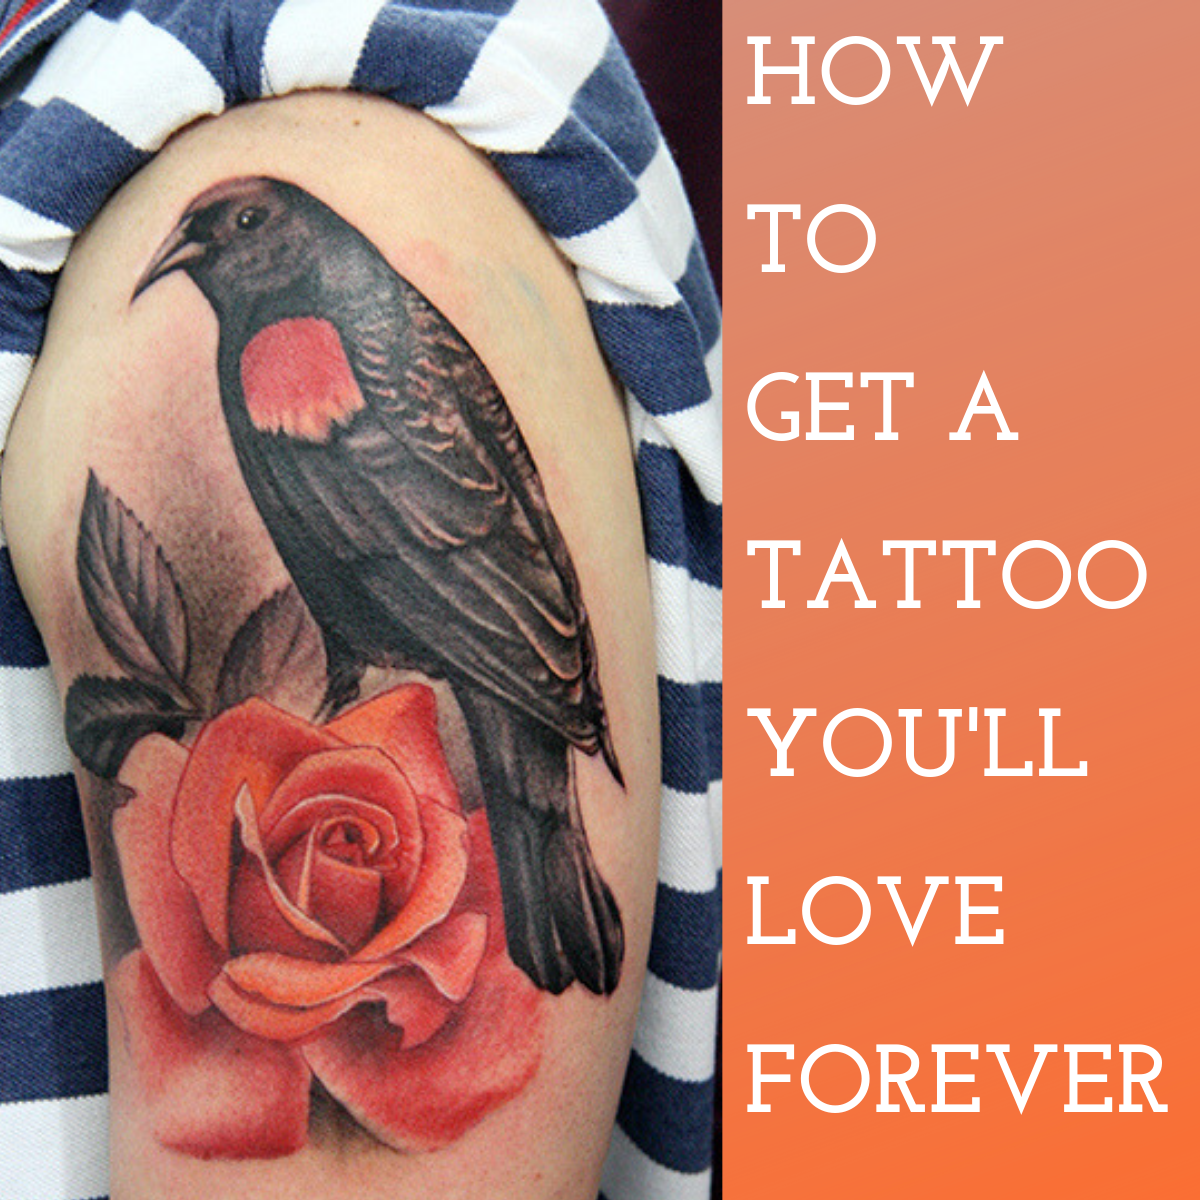 Tattoo by Ilona Ciunaite, the author of this article.